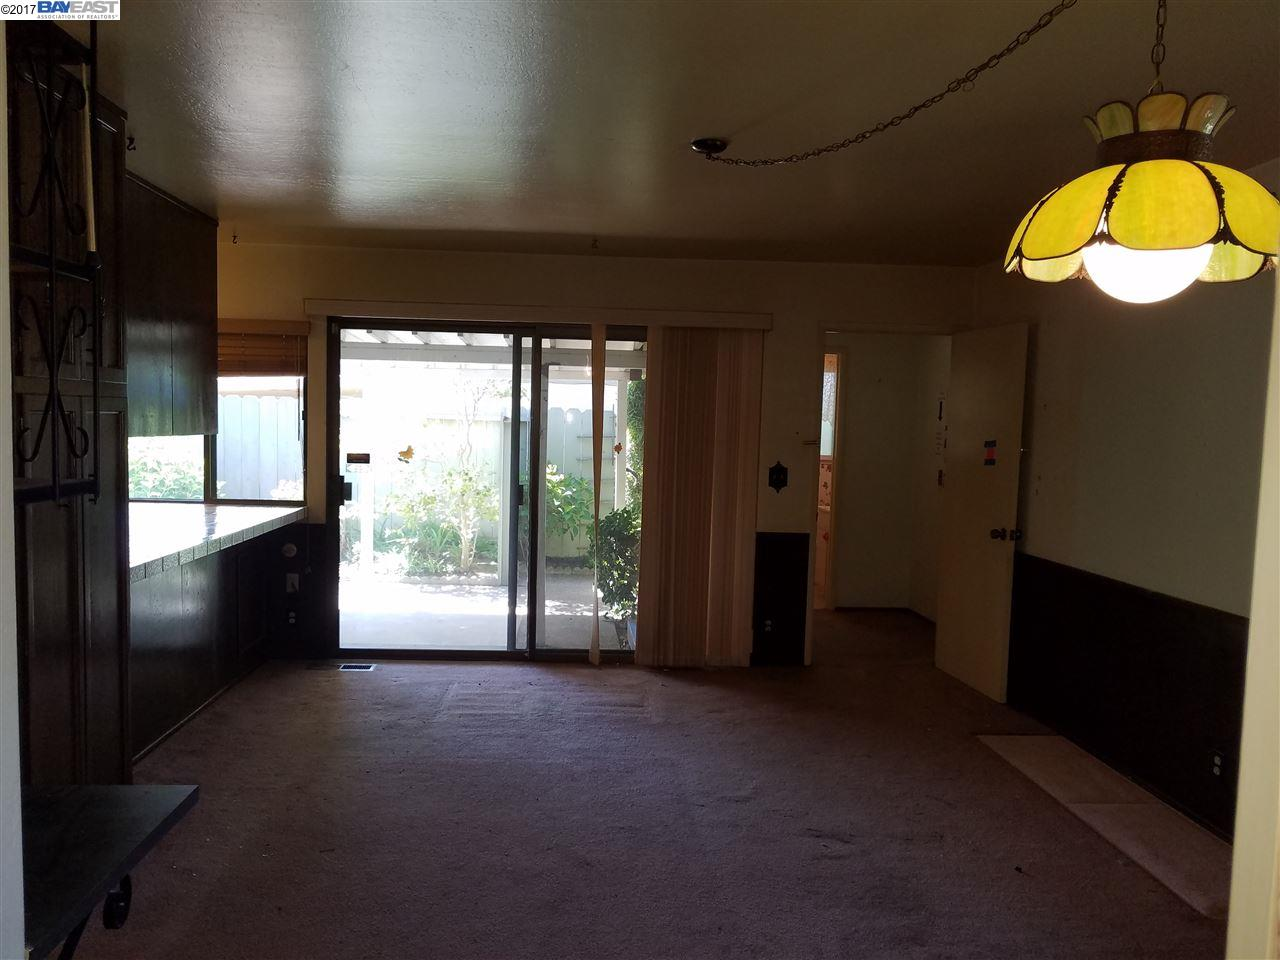 Additional photo for property listing at 27905 Edgecliff Way  Hayward, California 94542 United States